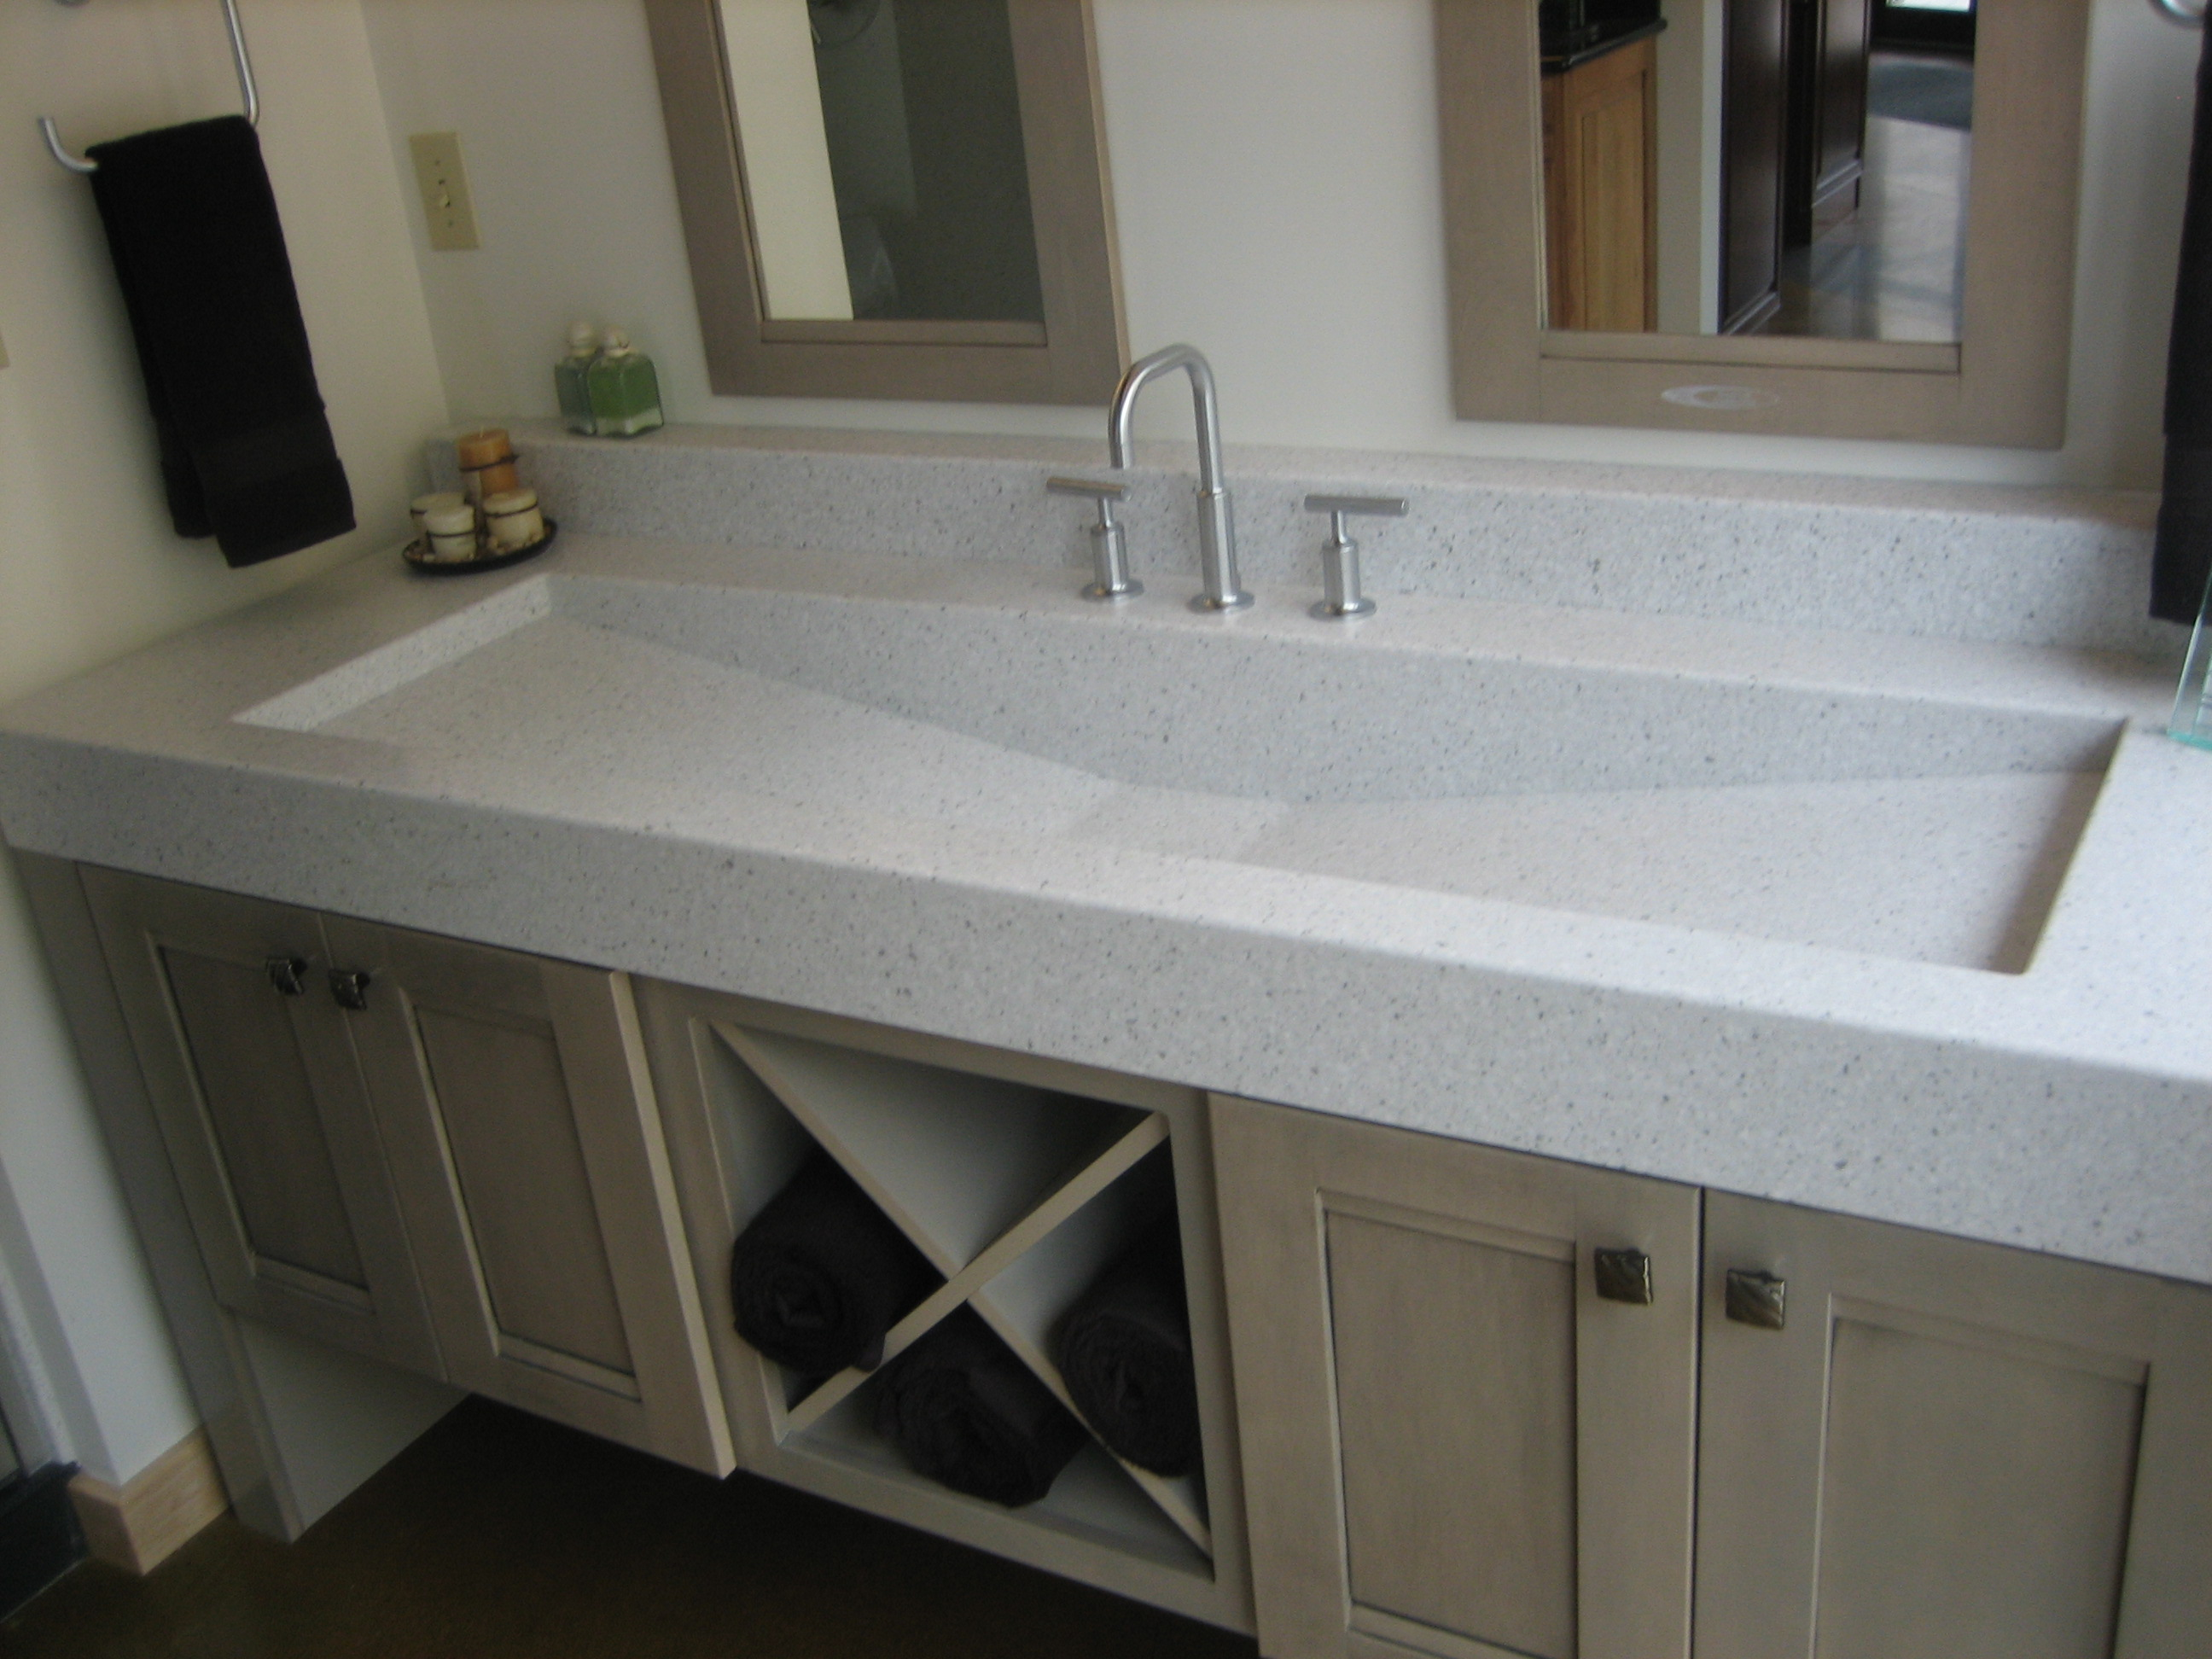 Bathroom Vanities Image Result For Small Double Sink Vanity     Cool Trough Sink Installed On Bathroom Vanity Units And Amazing Countertop  Plus Double Framed Mirror Trough